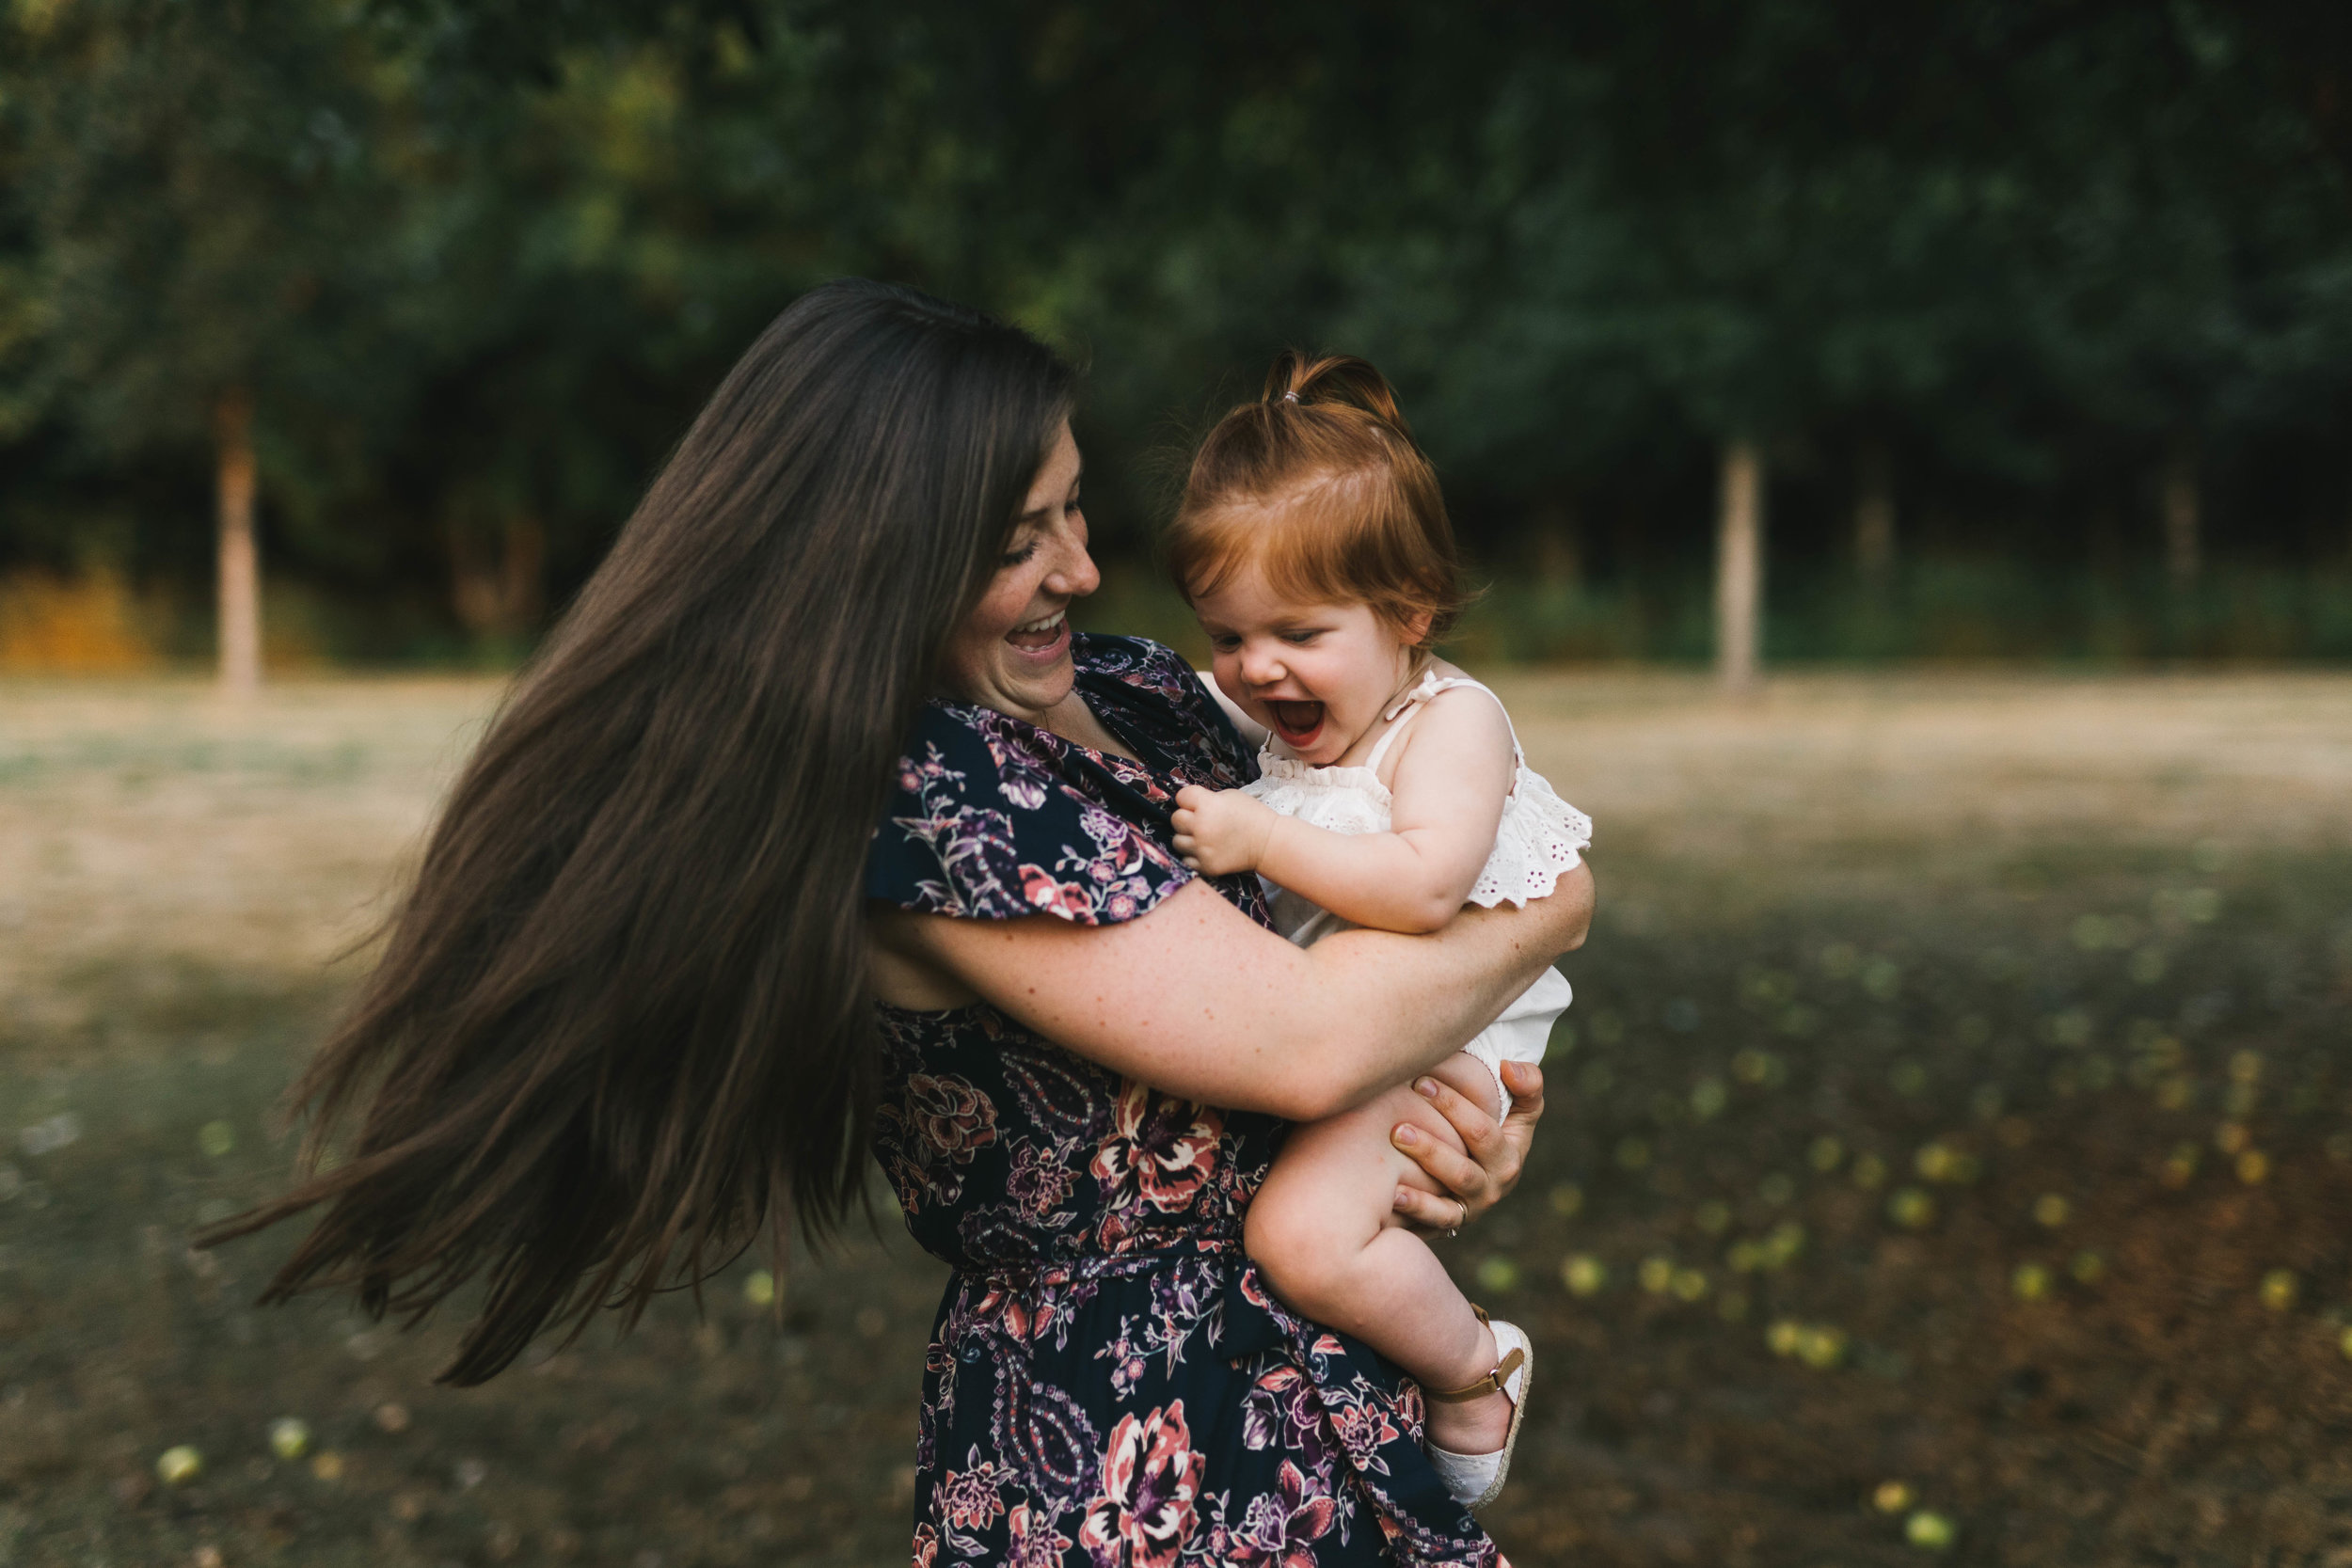 Playful and sweet family session in Issaquah at golden hour and twilight Mom and Dad with their toddler photographed by Chelsea Macor Photography in a playful and intimate way-7.jpg